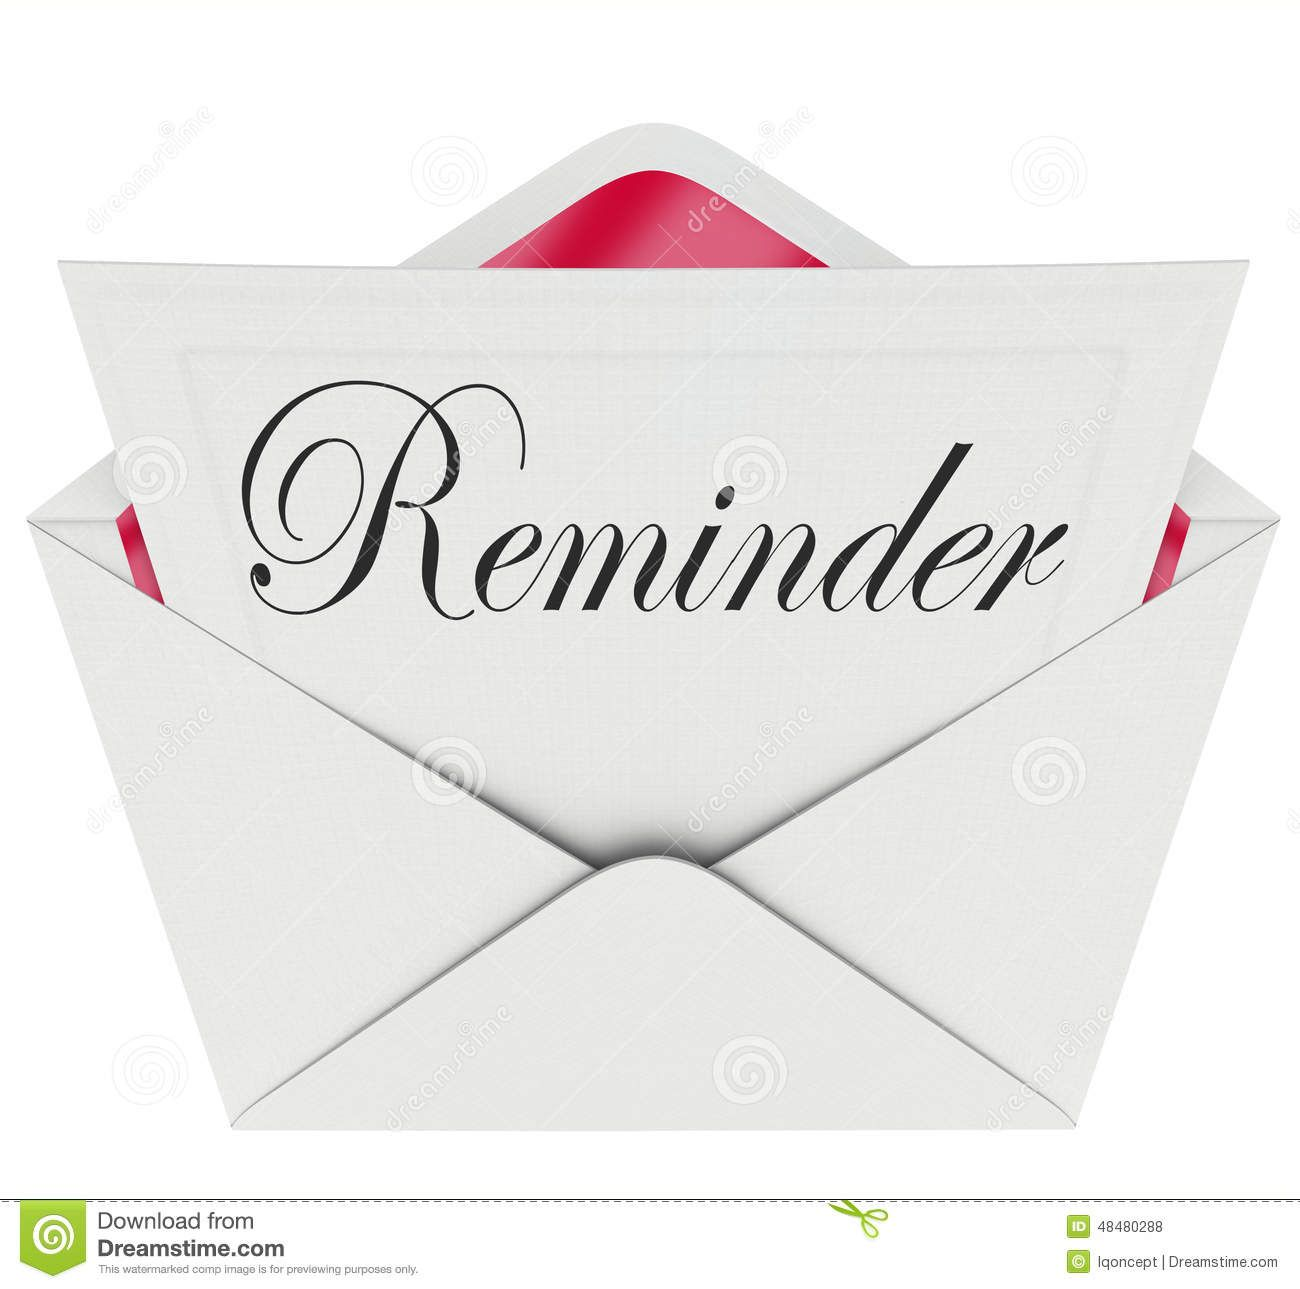 Reminderwordnotemessagerememberimportantappointmentmeetin - Birthday invitation reminder message